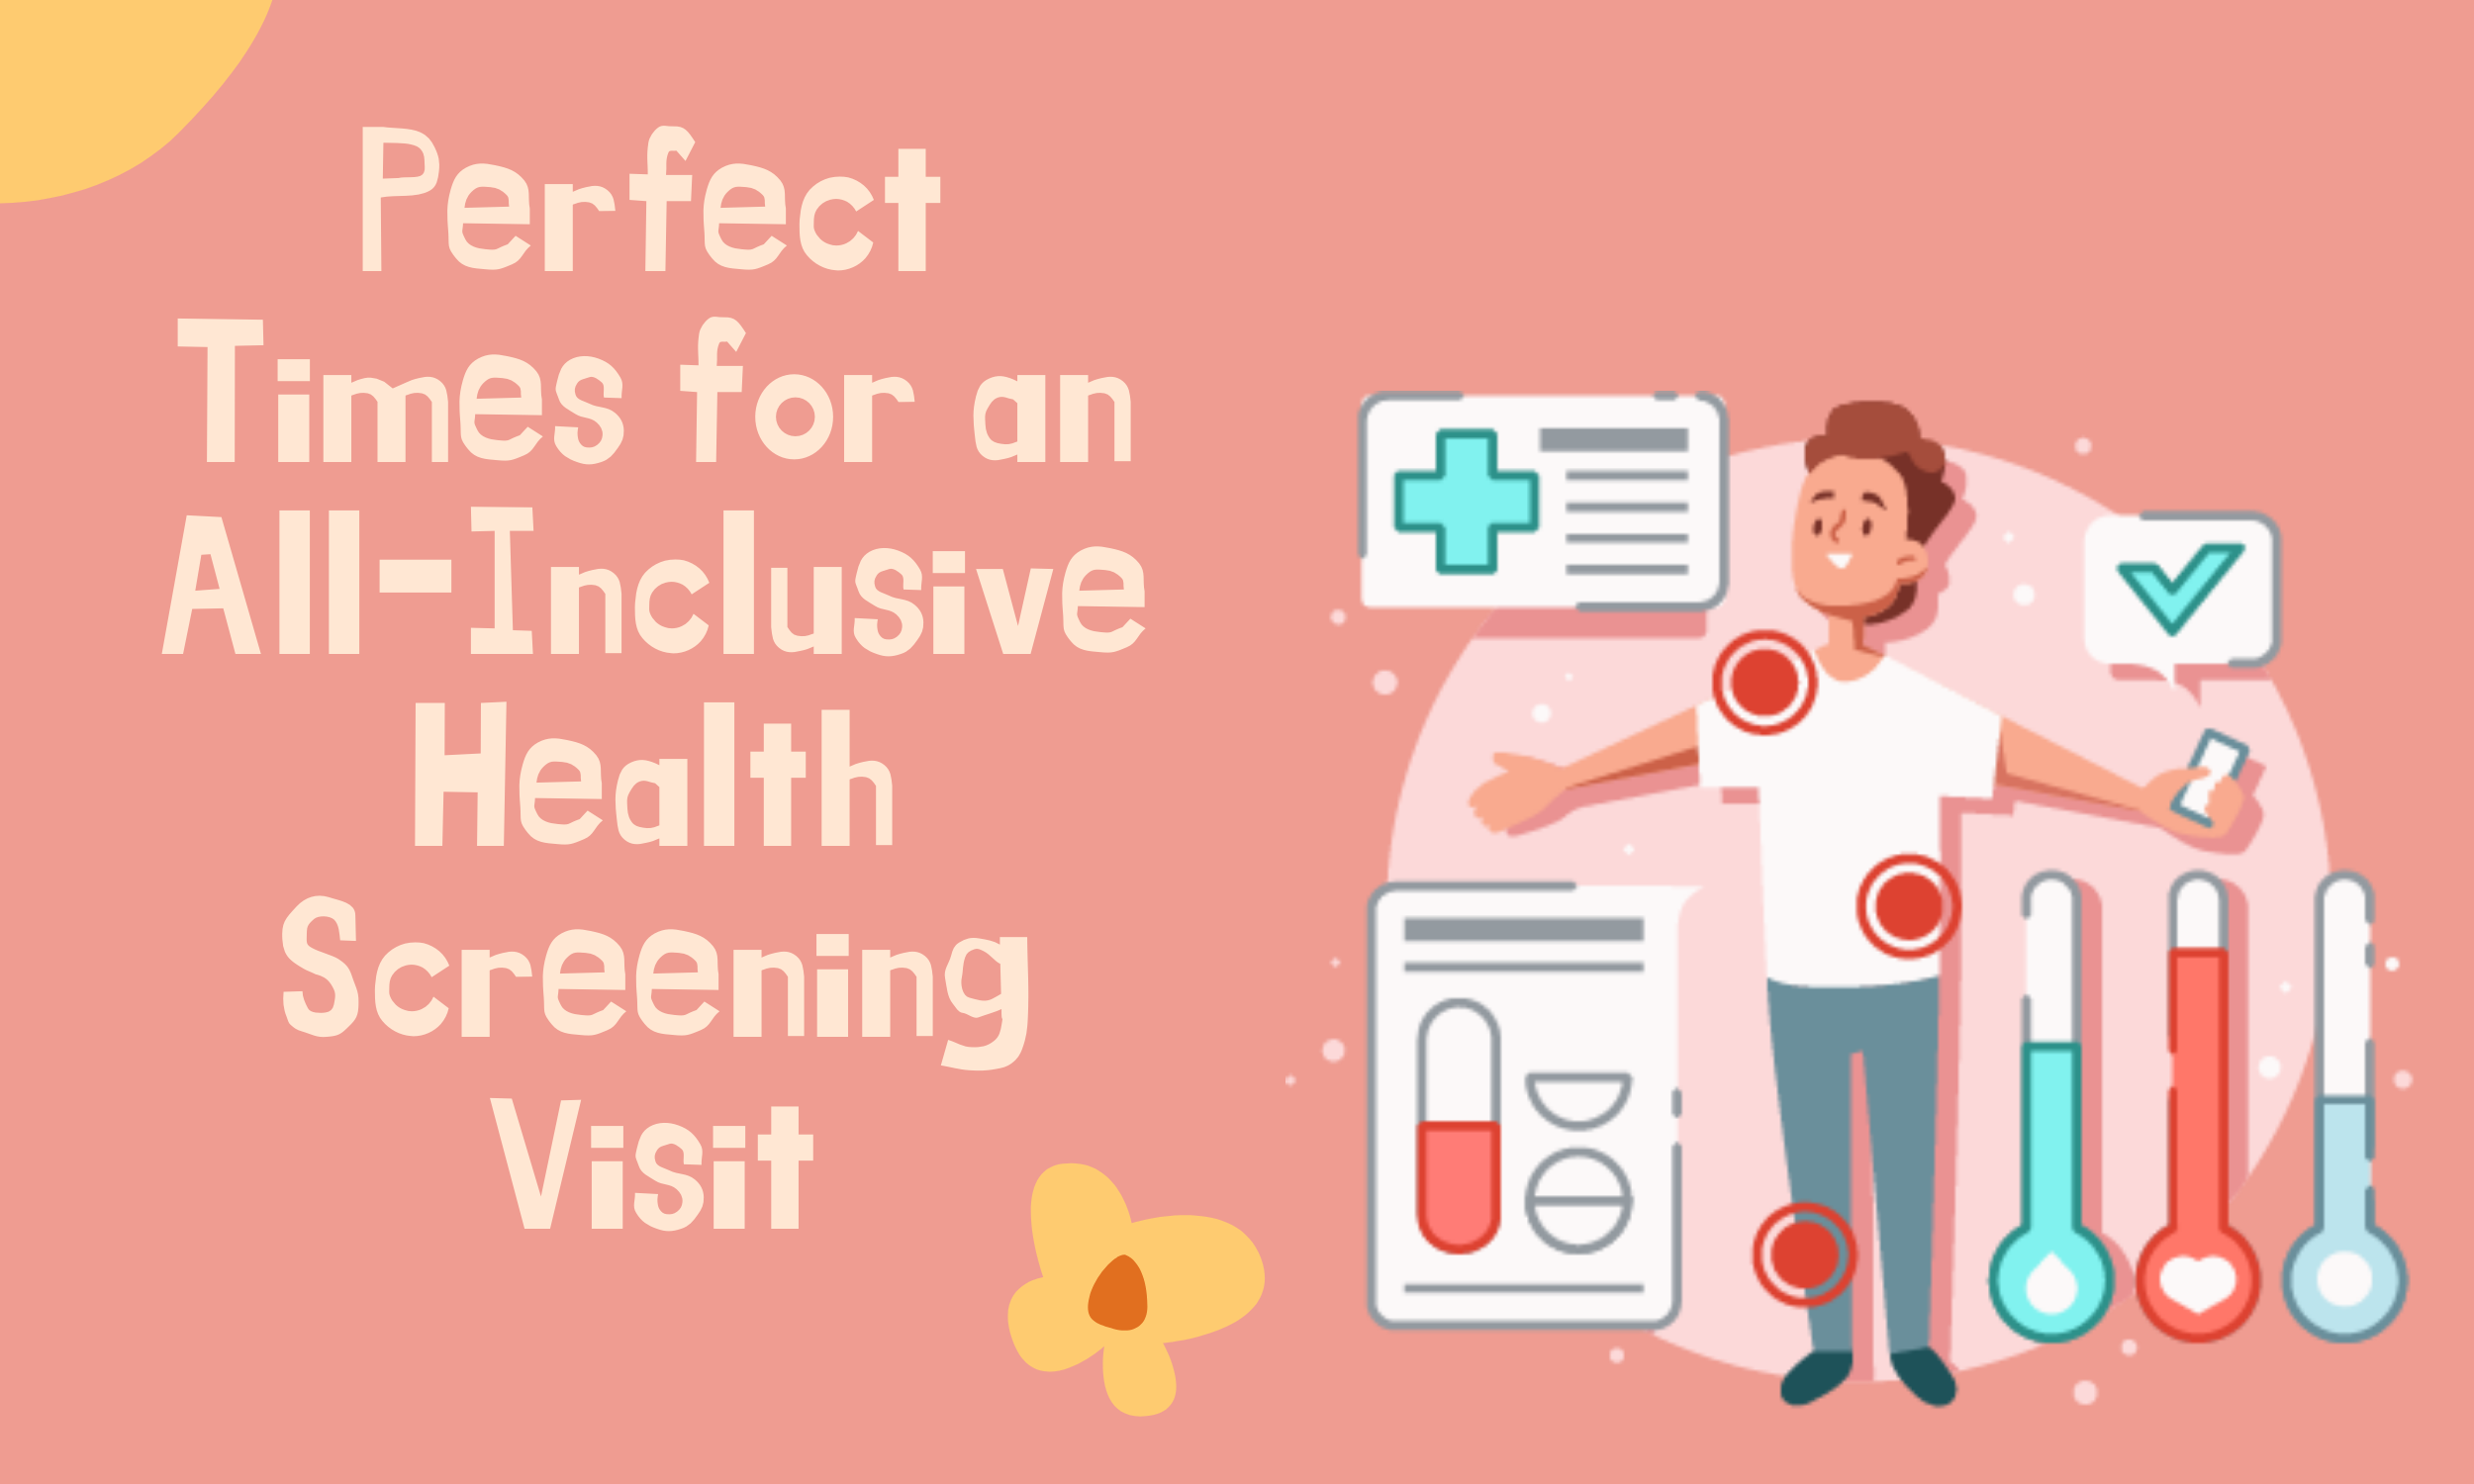 Perfect-Times-for-an-All-Inclusive-Health-Screening-Visit